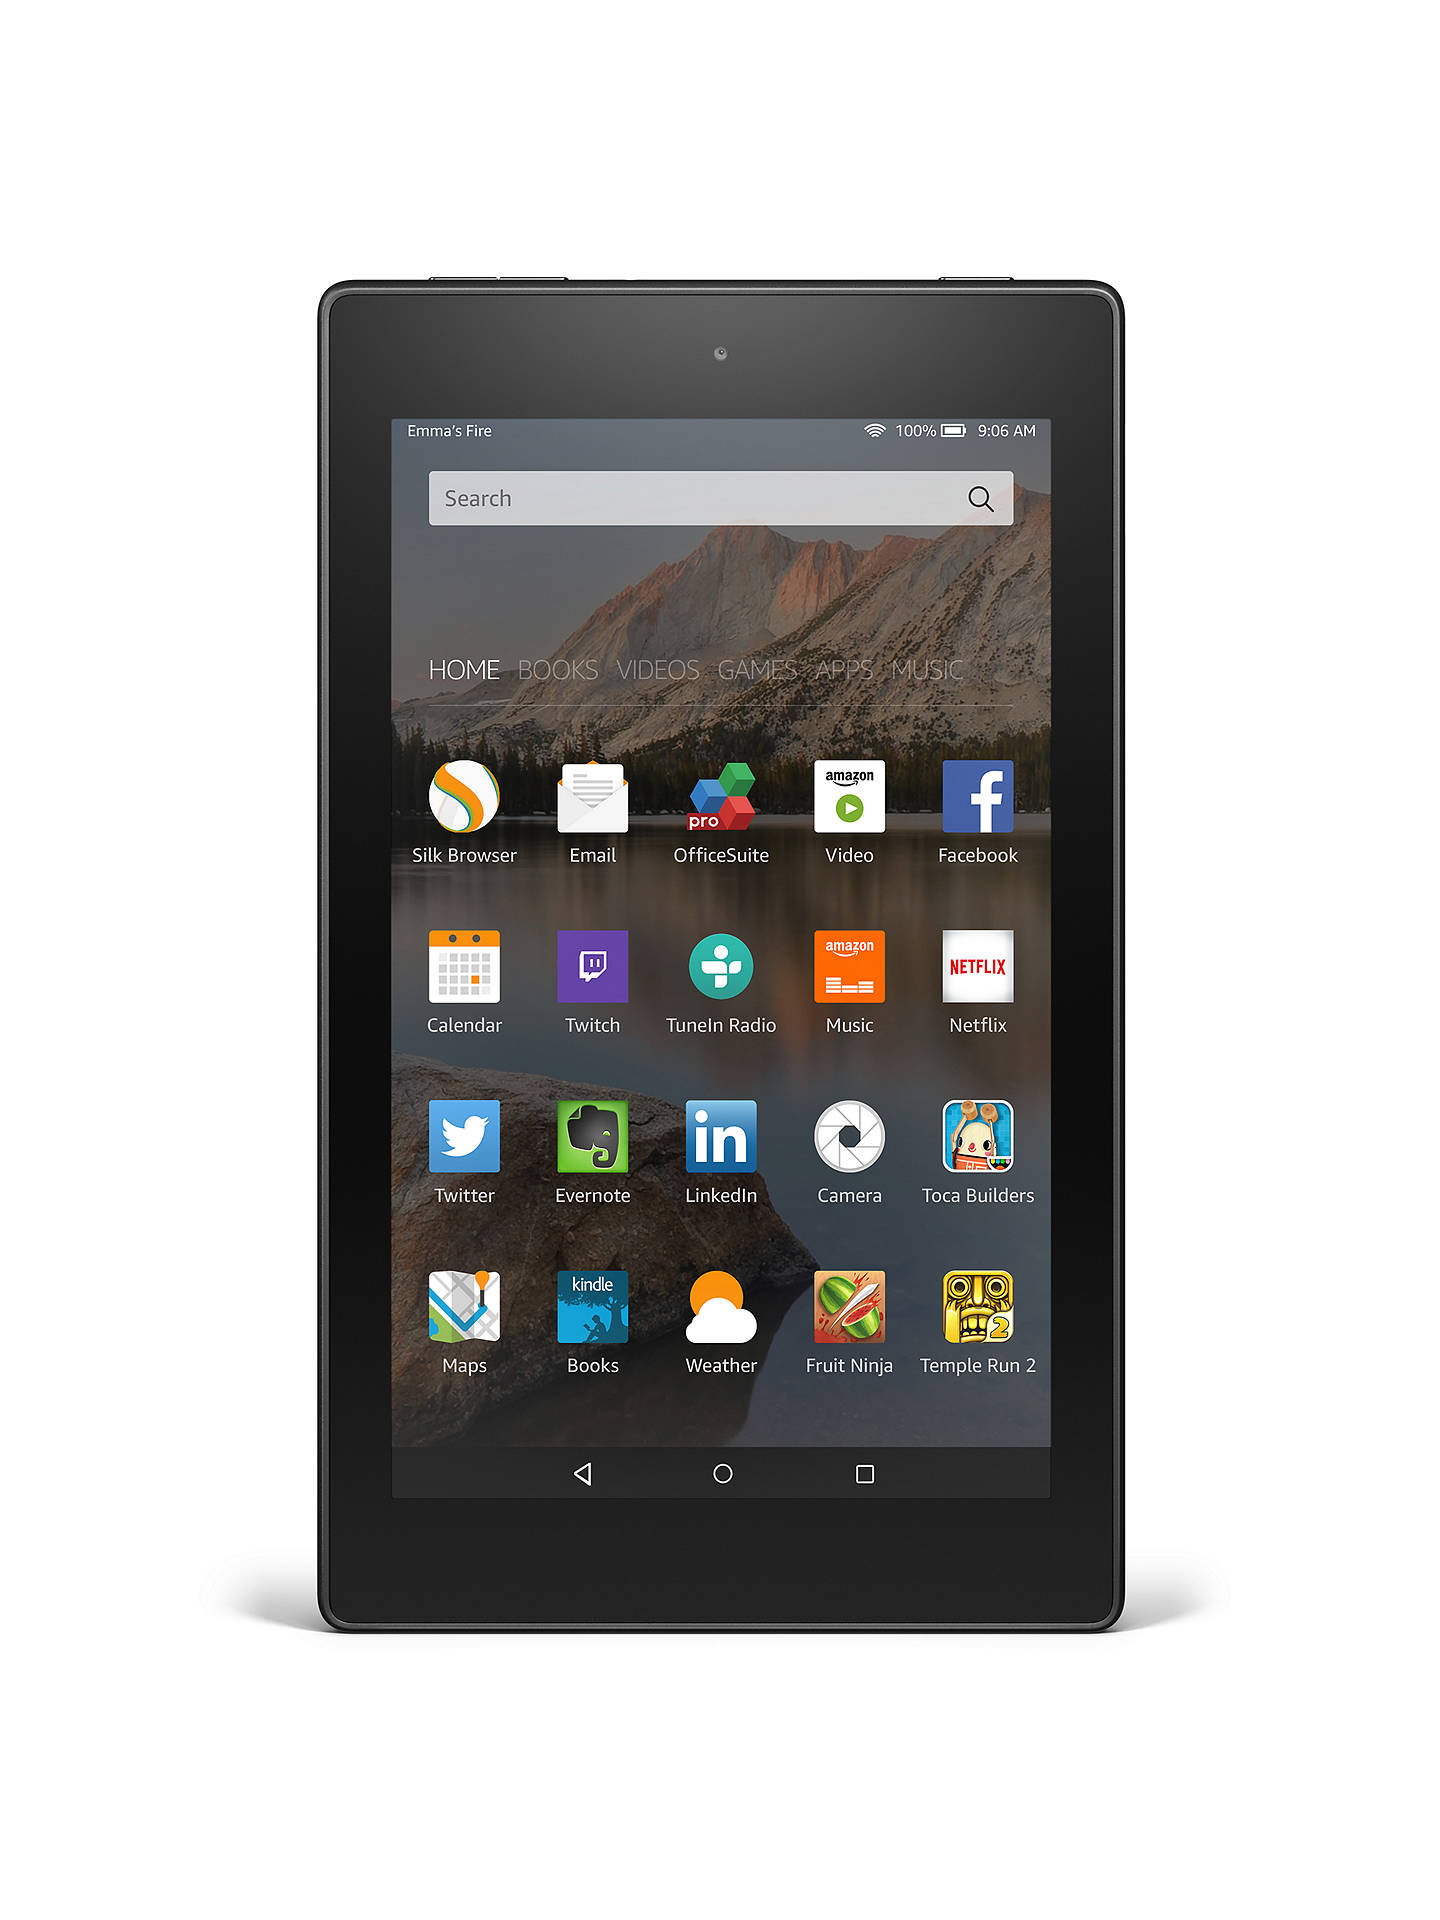 Amazon Fire HD 8 Tablet, Quad-core, Fire OS, 8